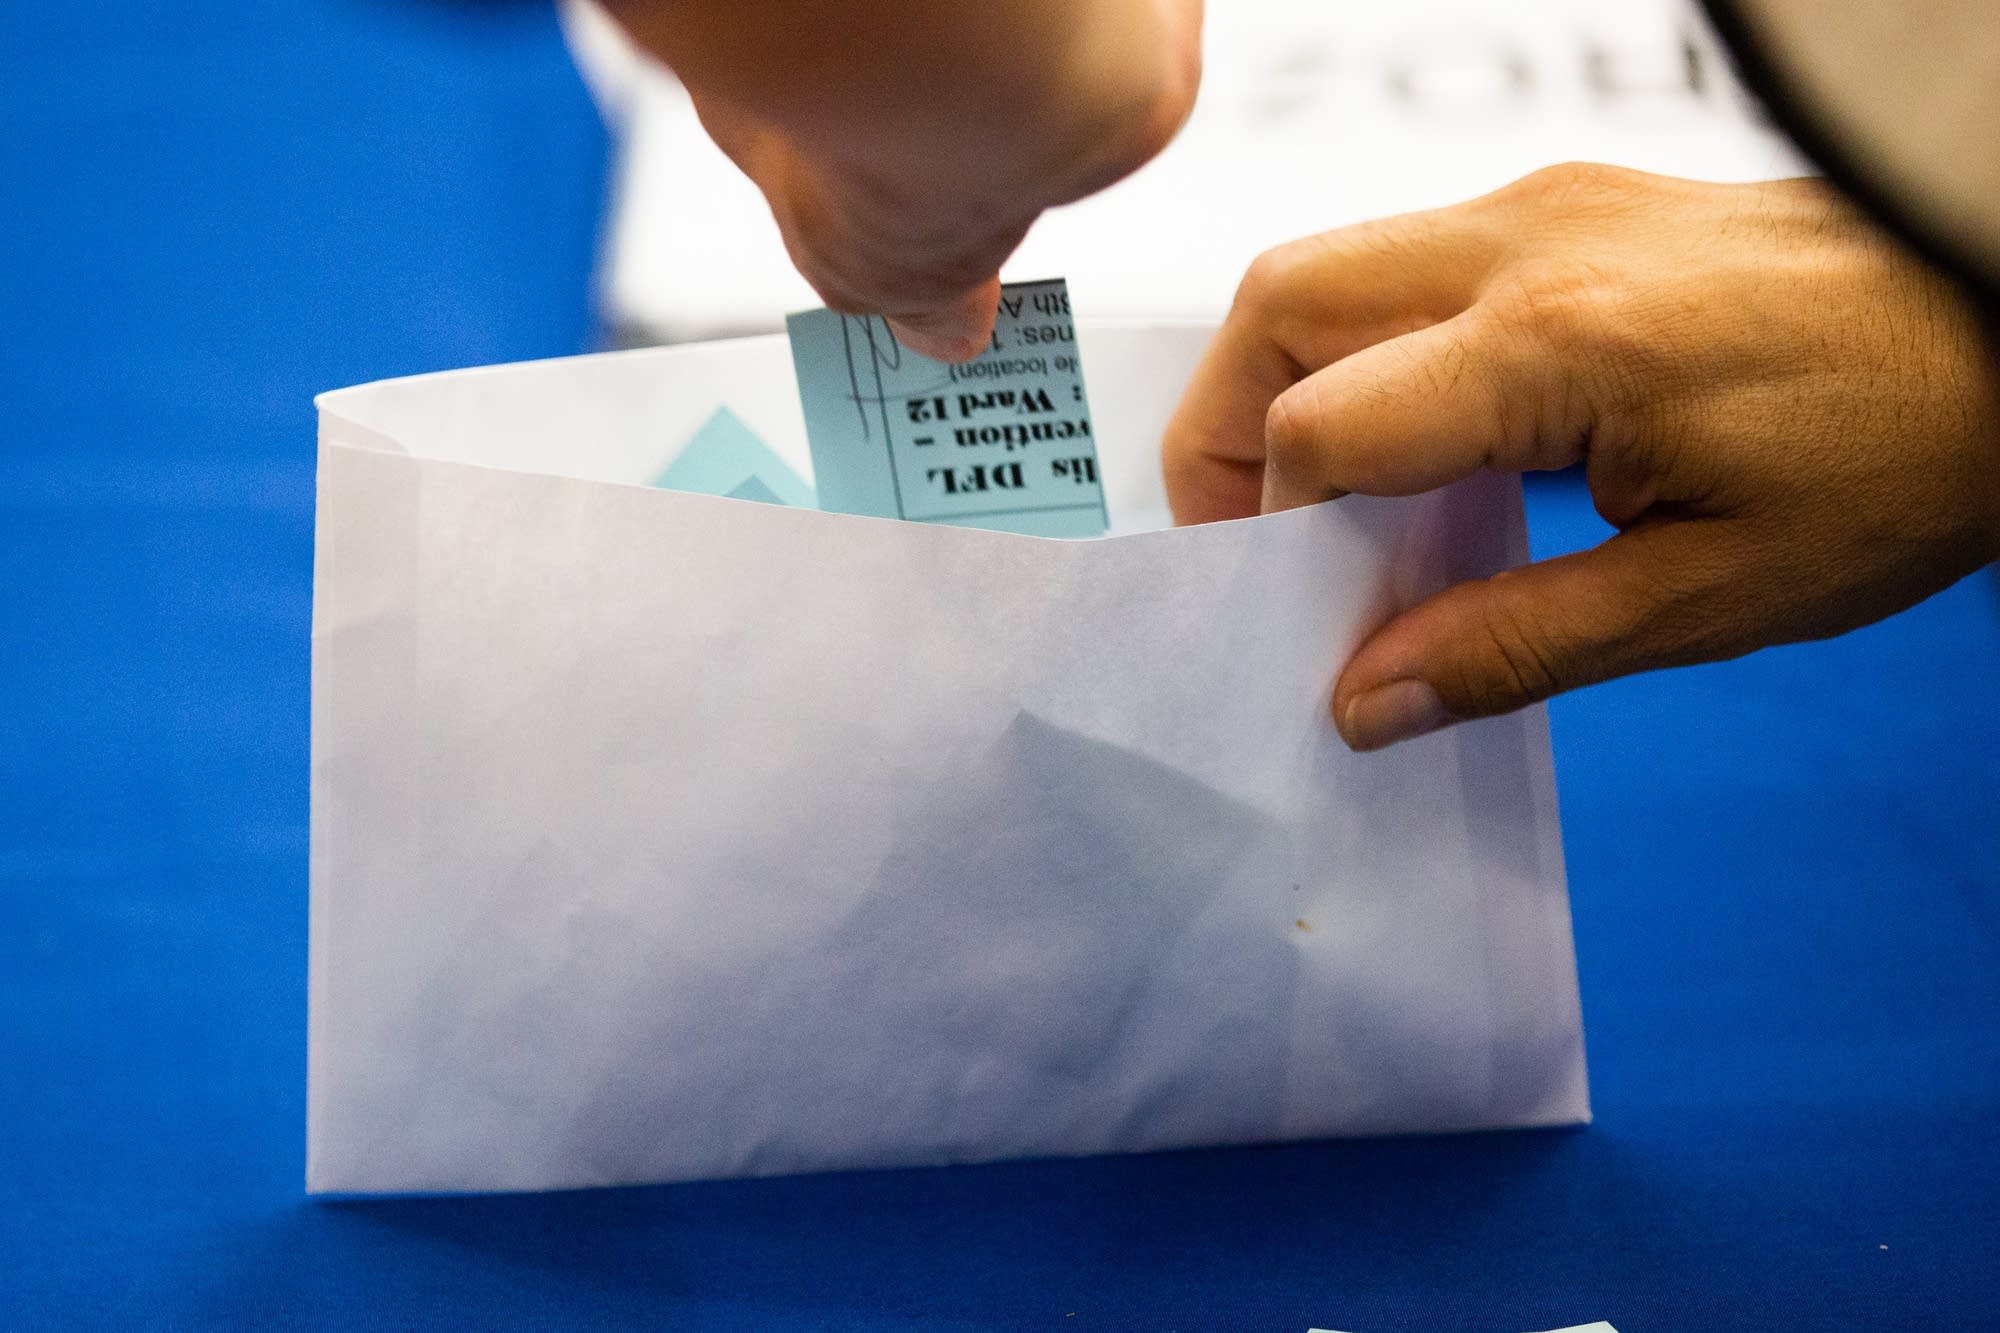 A ballot is put in an envelope.